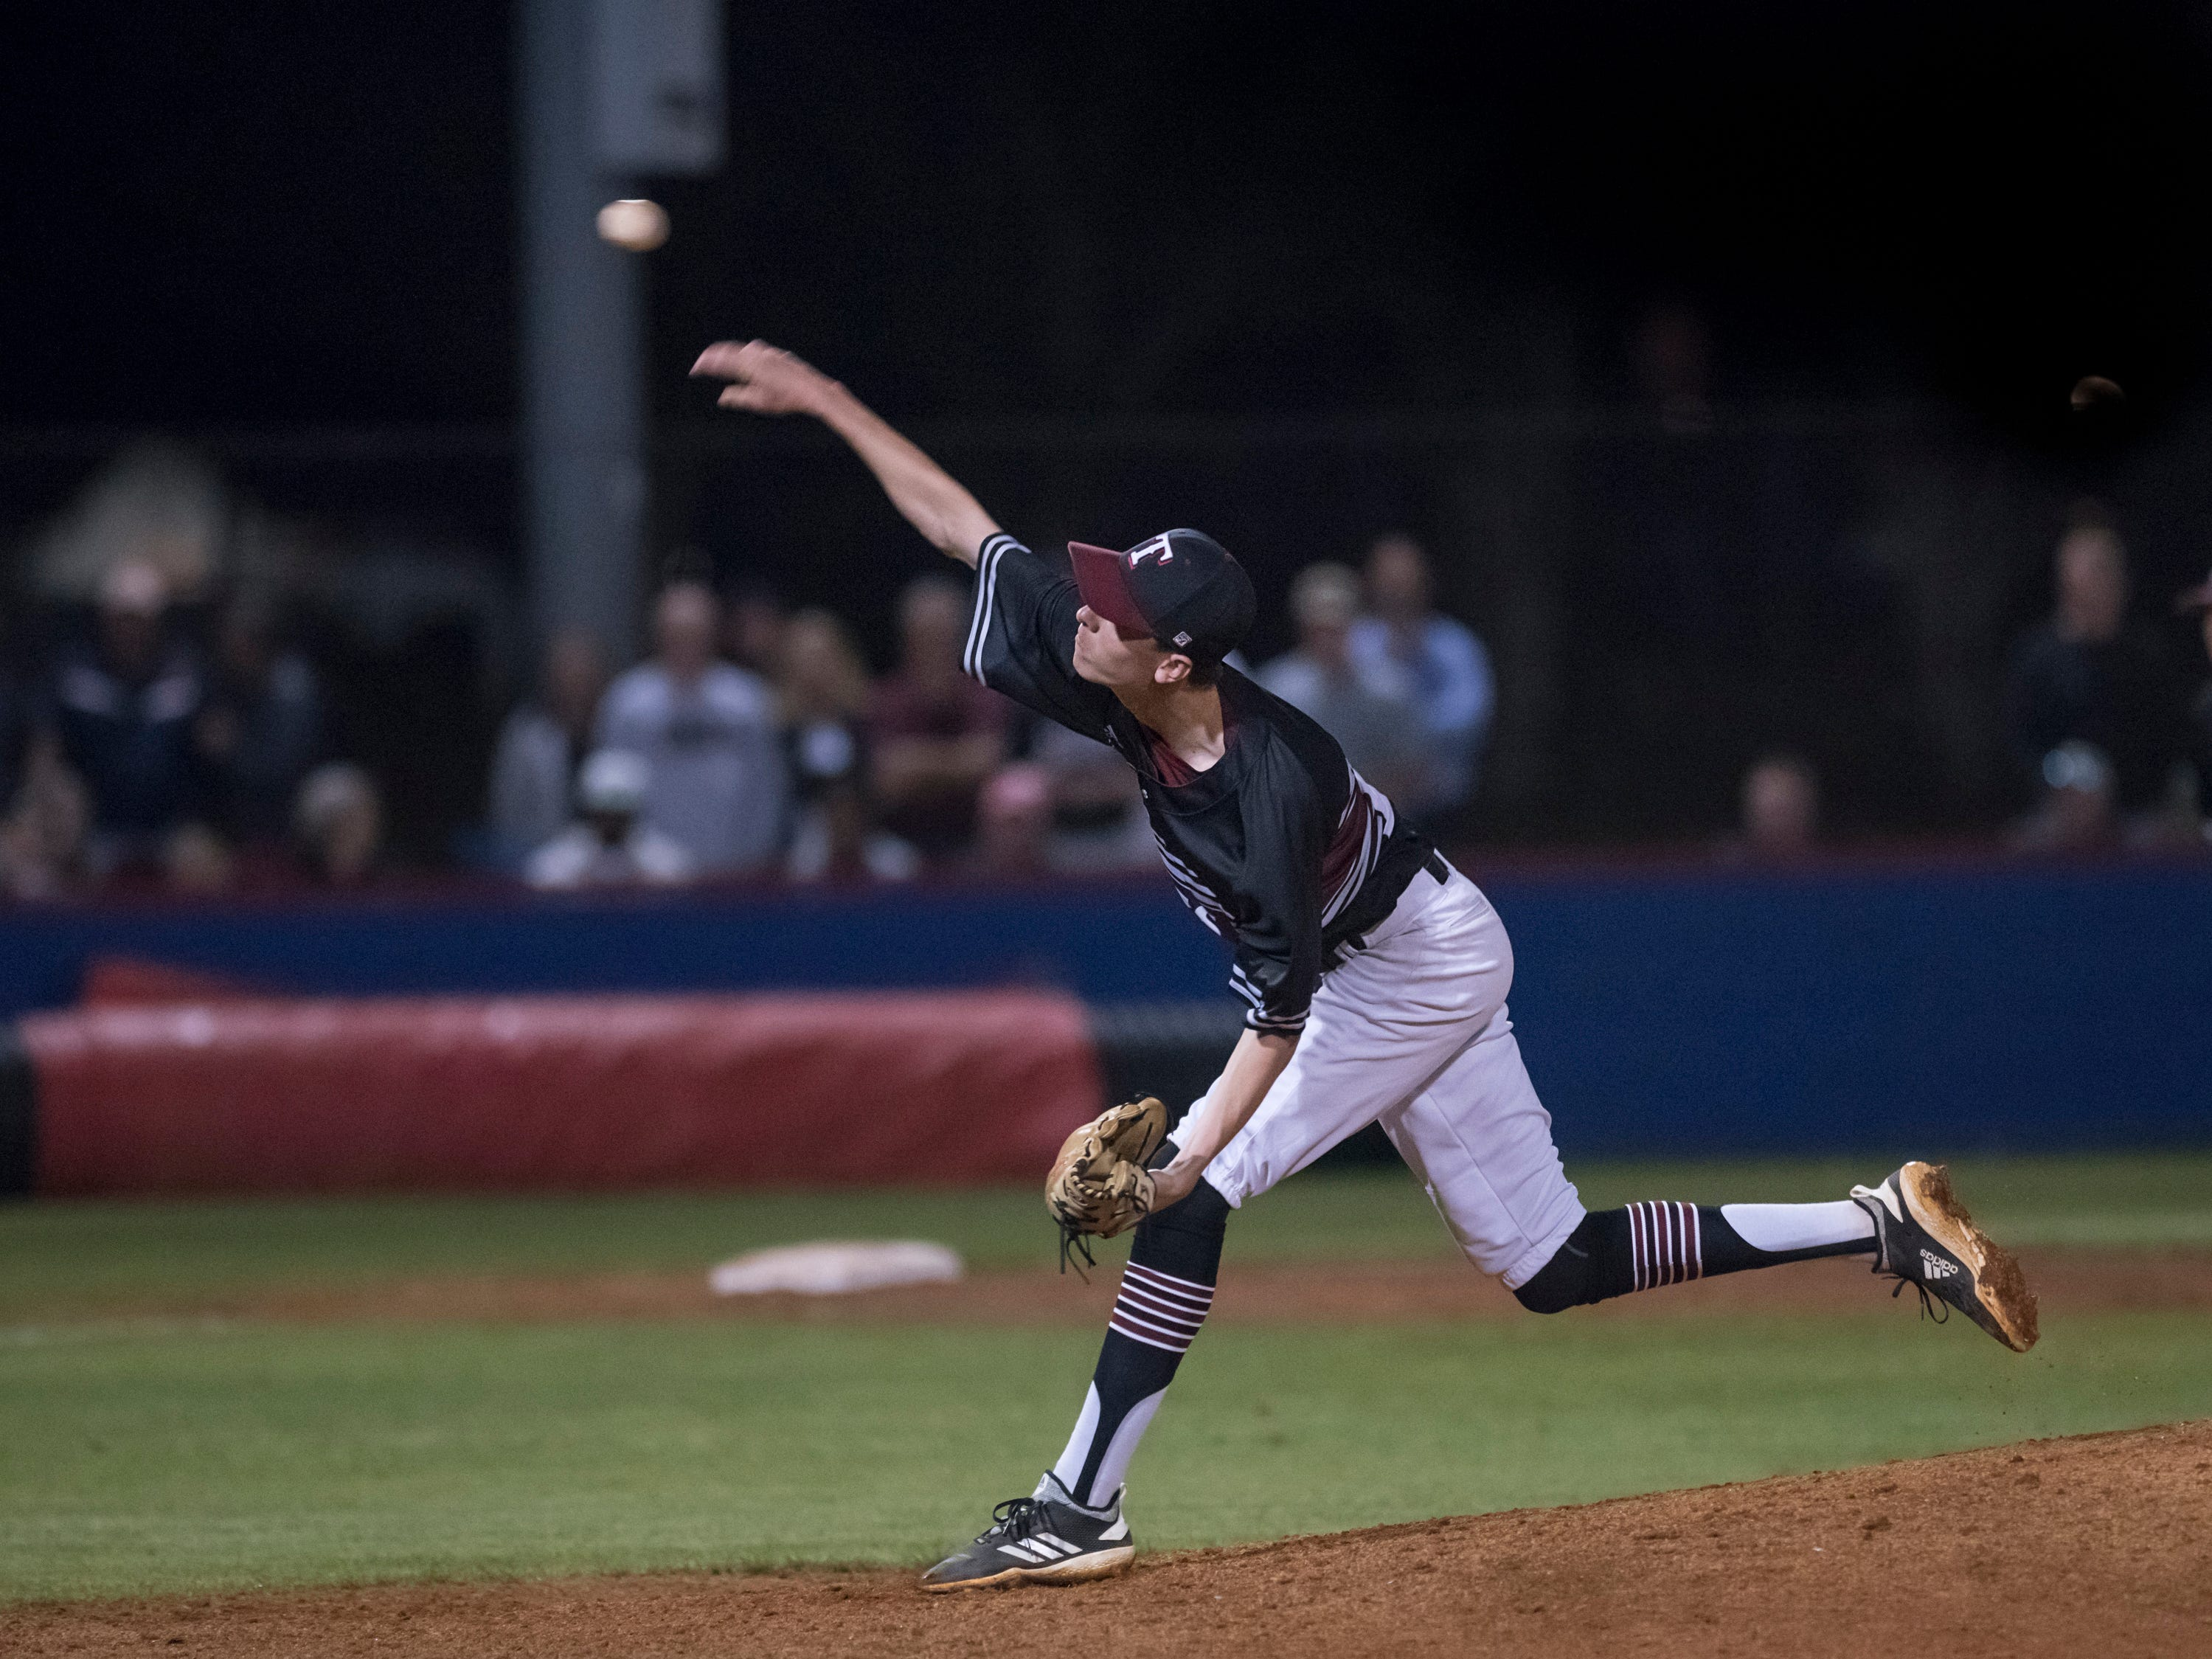 Jace Dunsford (21) pitches during the Tate vs Pace baseball game at Pace High School on Thursday, April 11, 2019.